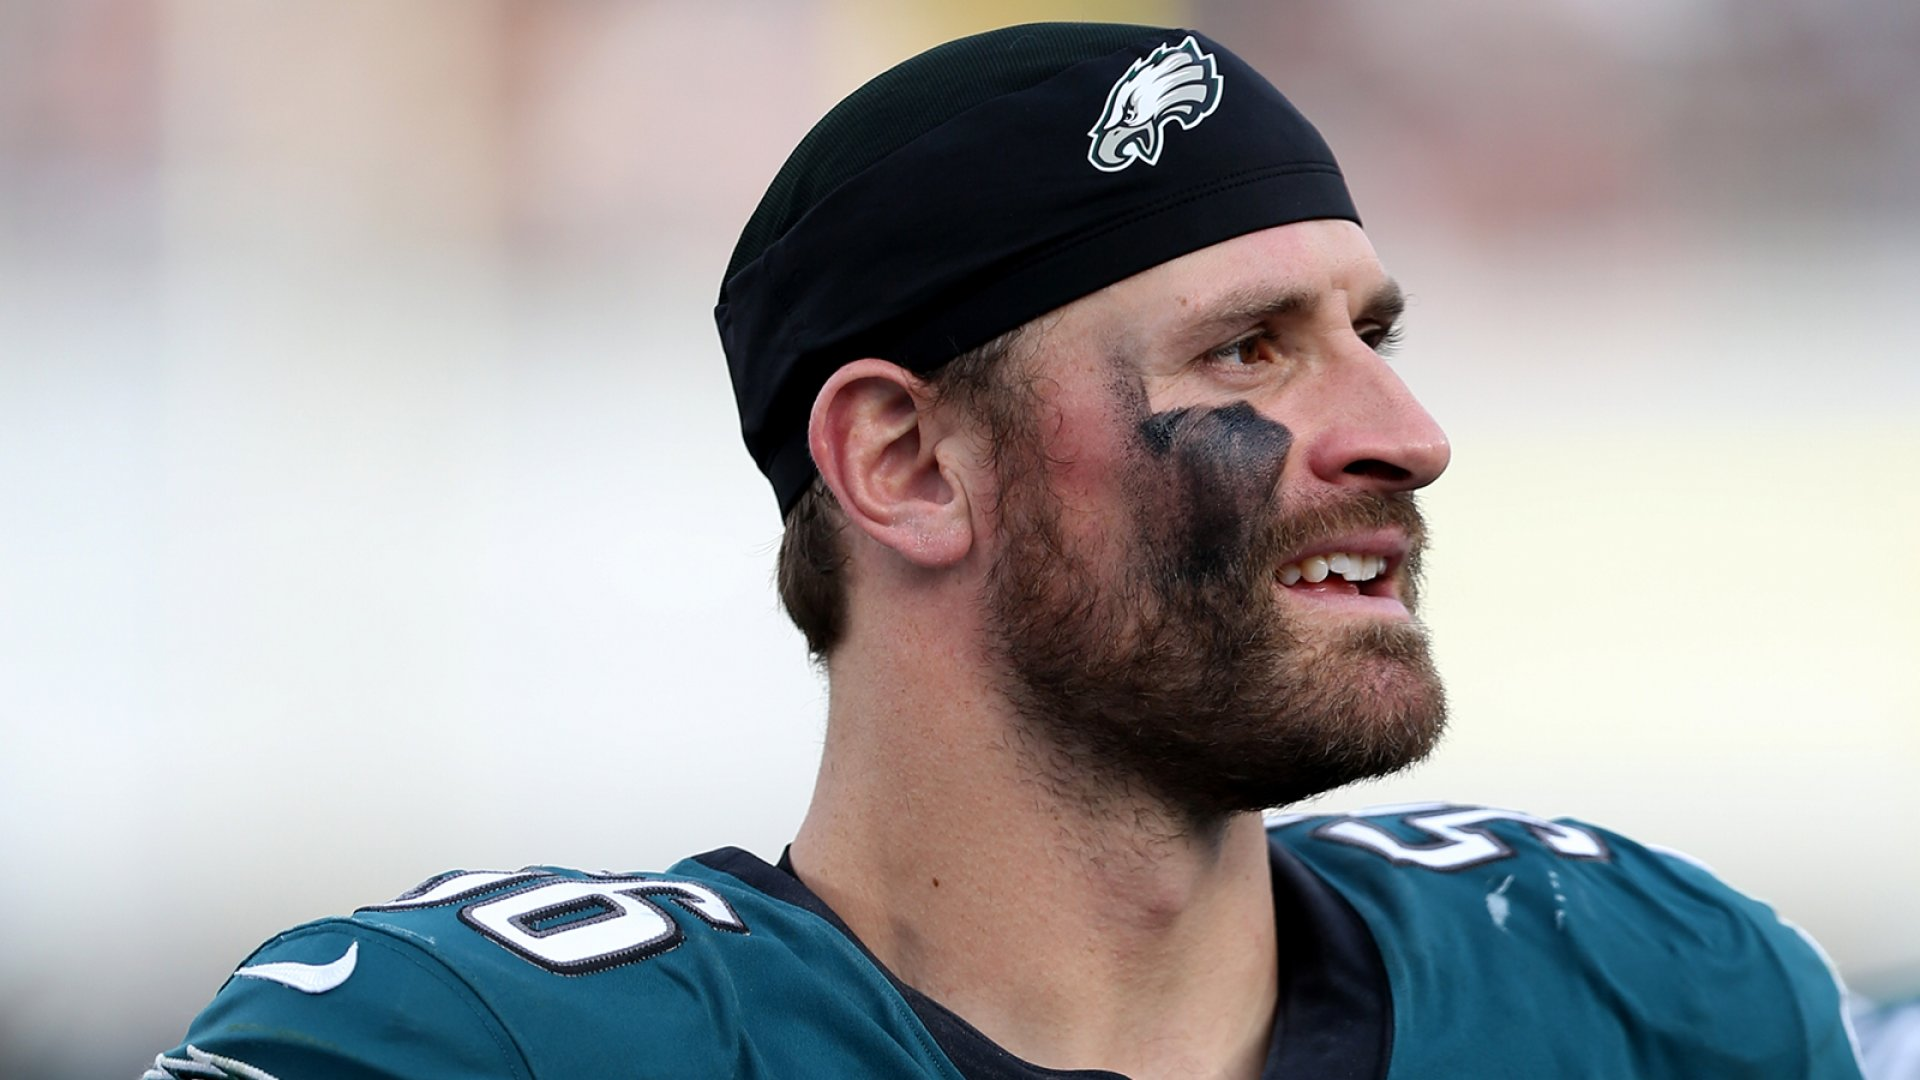 NFL Star Chris Long Donated His Entire Salary to Charity. Every Good Leader Should Follow His Example (Even If You Don't Give Away All Your Money)